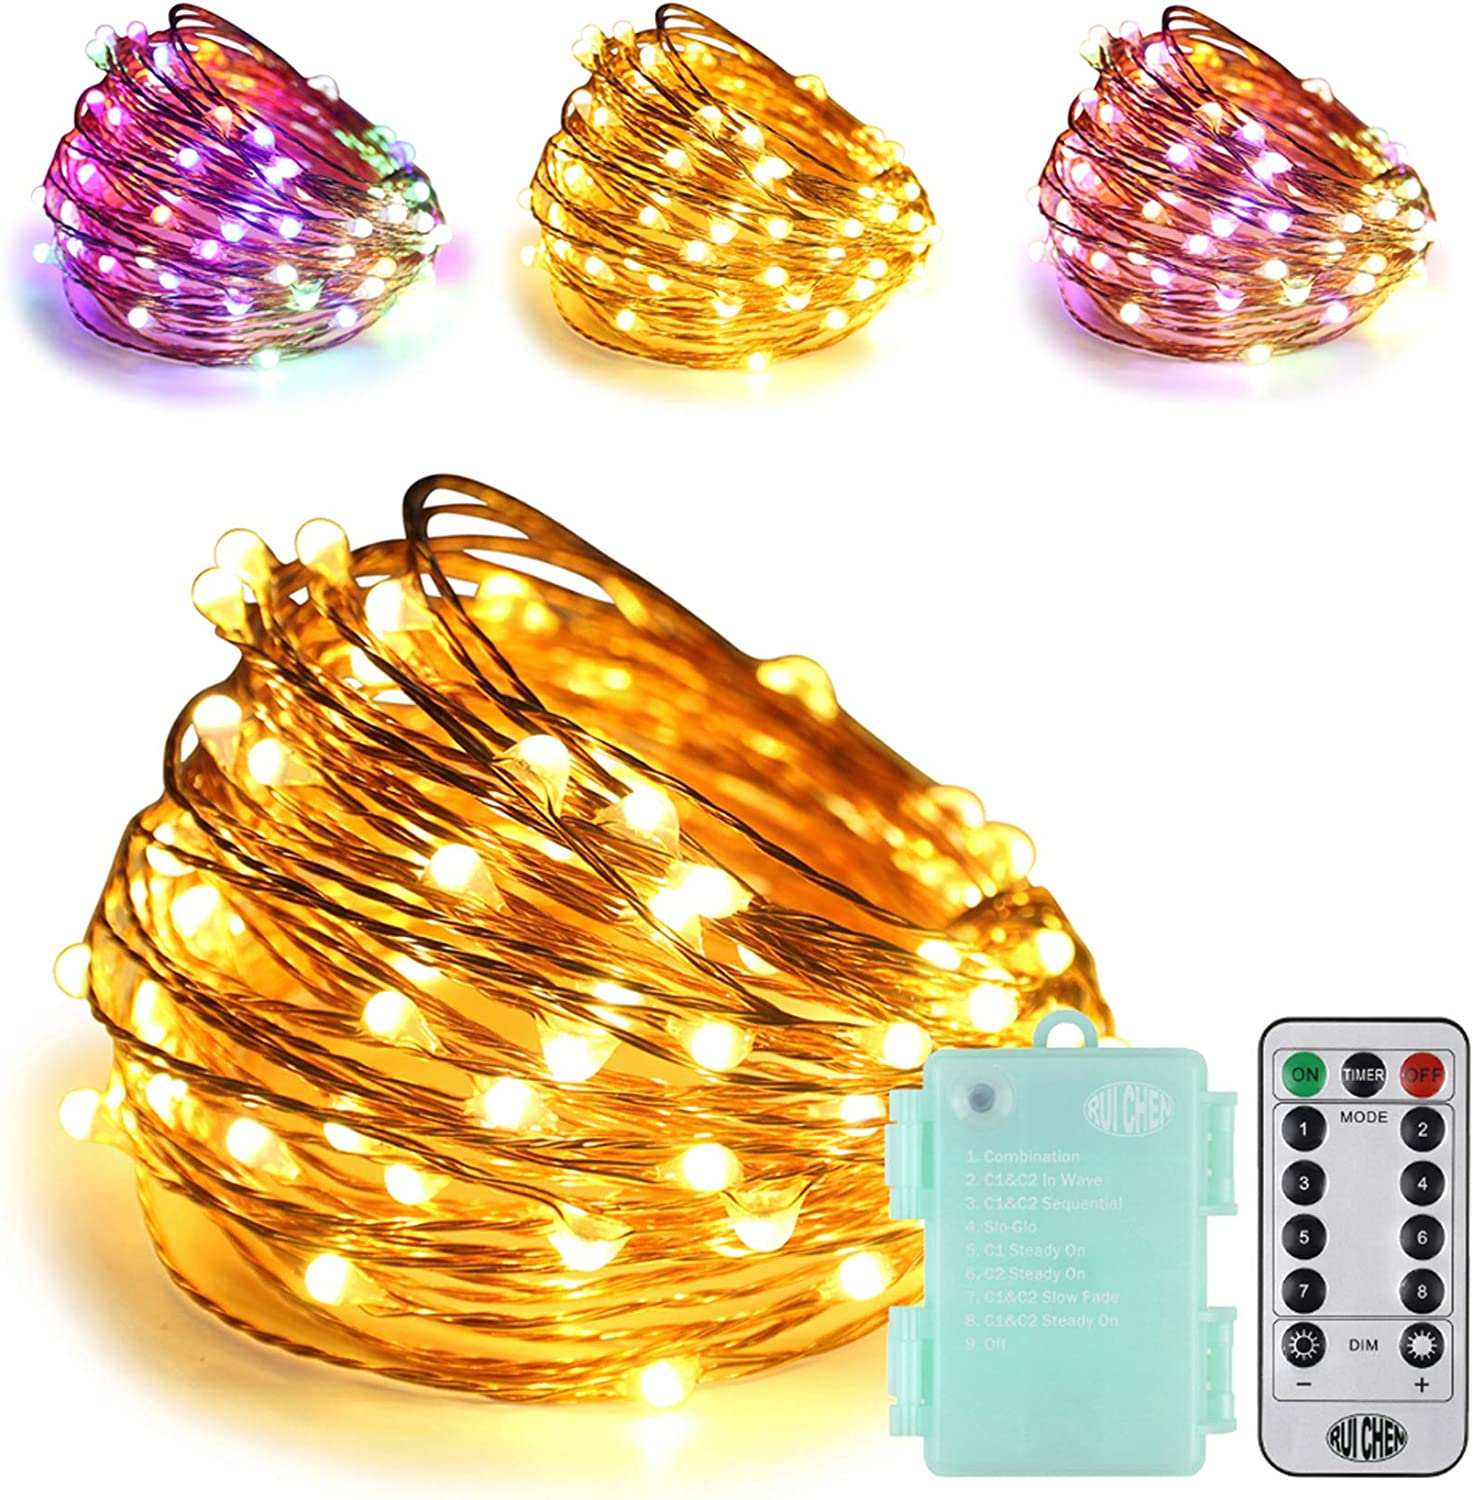 RUICHEN LED String Lights Battery Powered,33Ft 100LED Multi Color Changing Fairy Lights with Remote Waterproof Copper Wire Starry Light for Outdoor Garden Wedding Party Patio(Warm White&Multi Color)